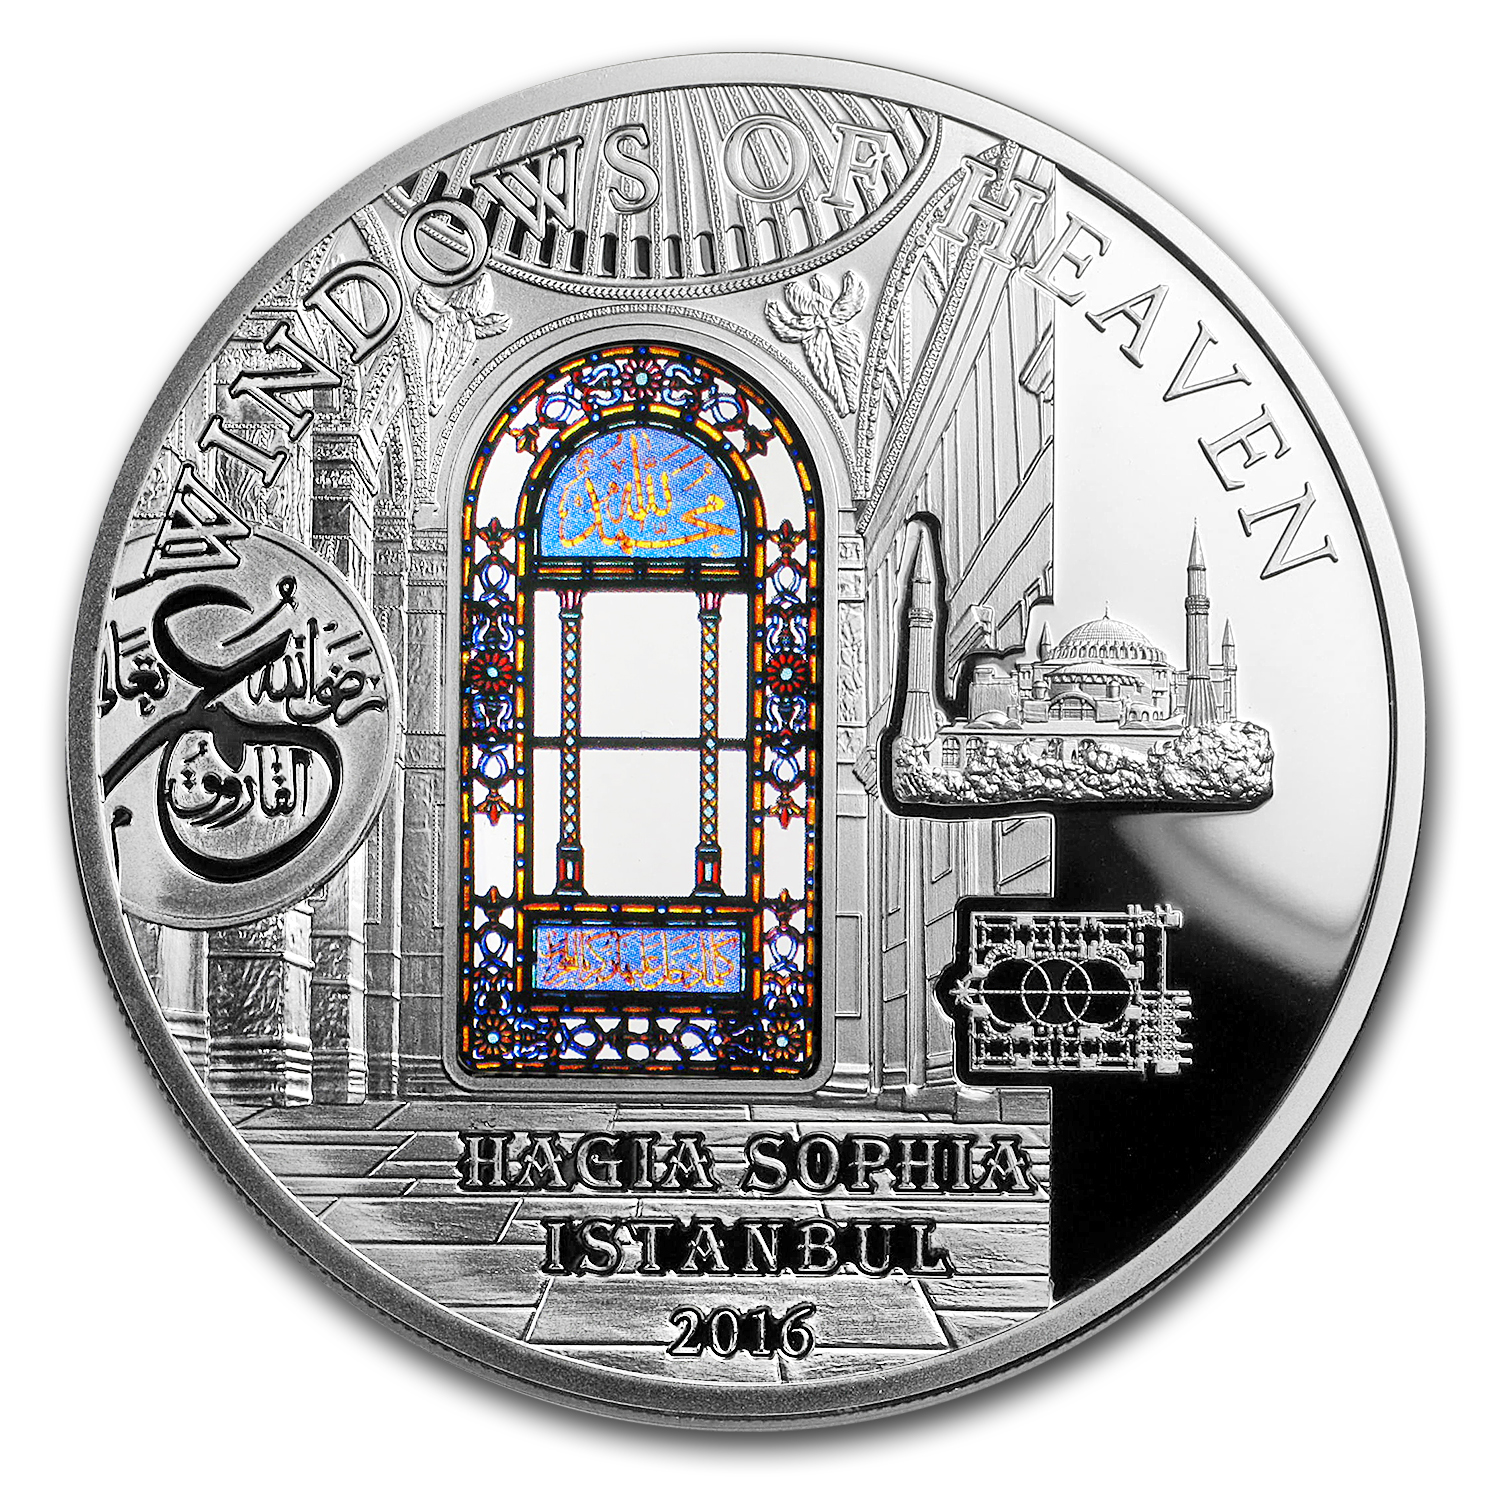 2016 Cook Islands Silver $10 Windows of Heaven Hagia Sophia